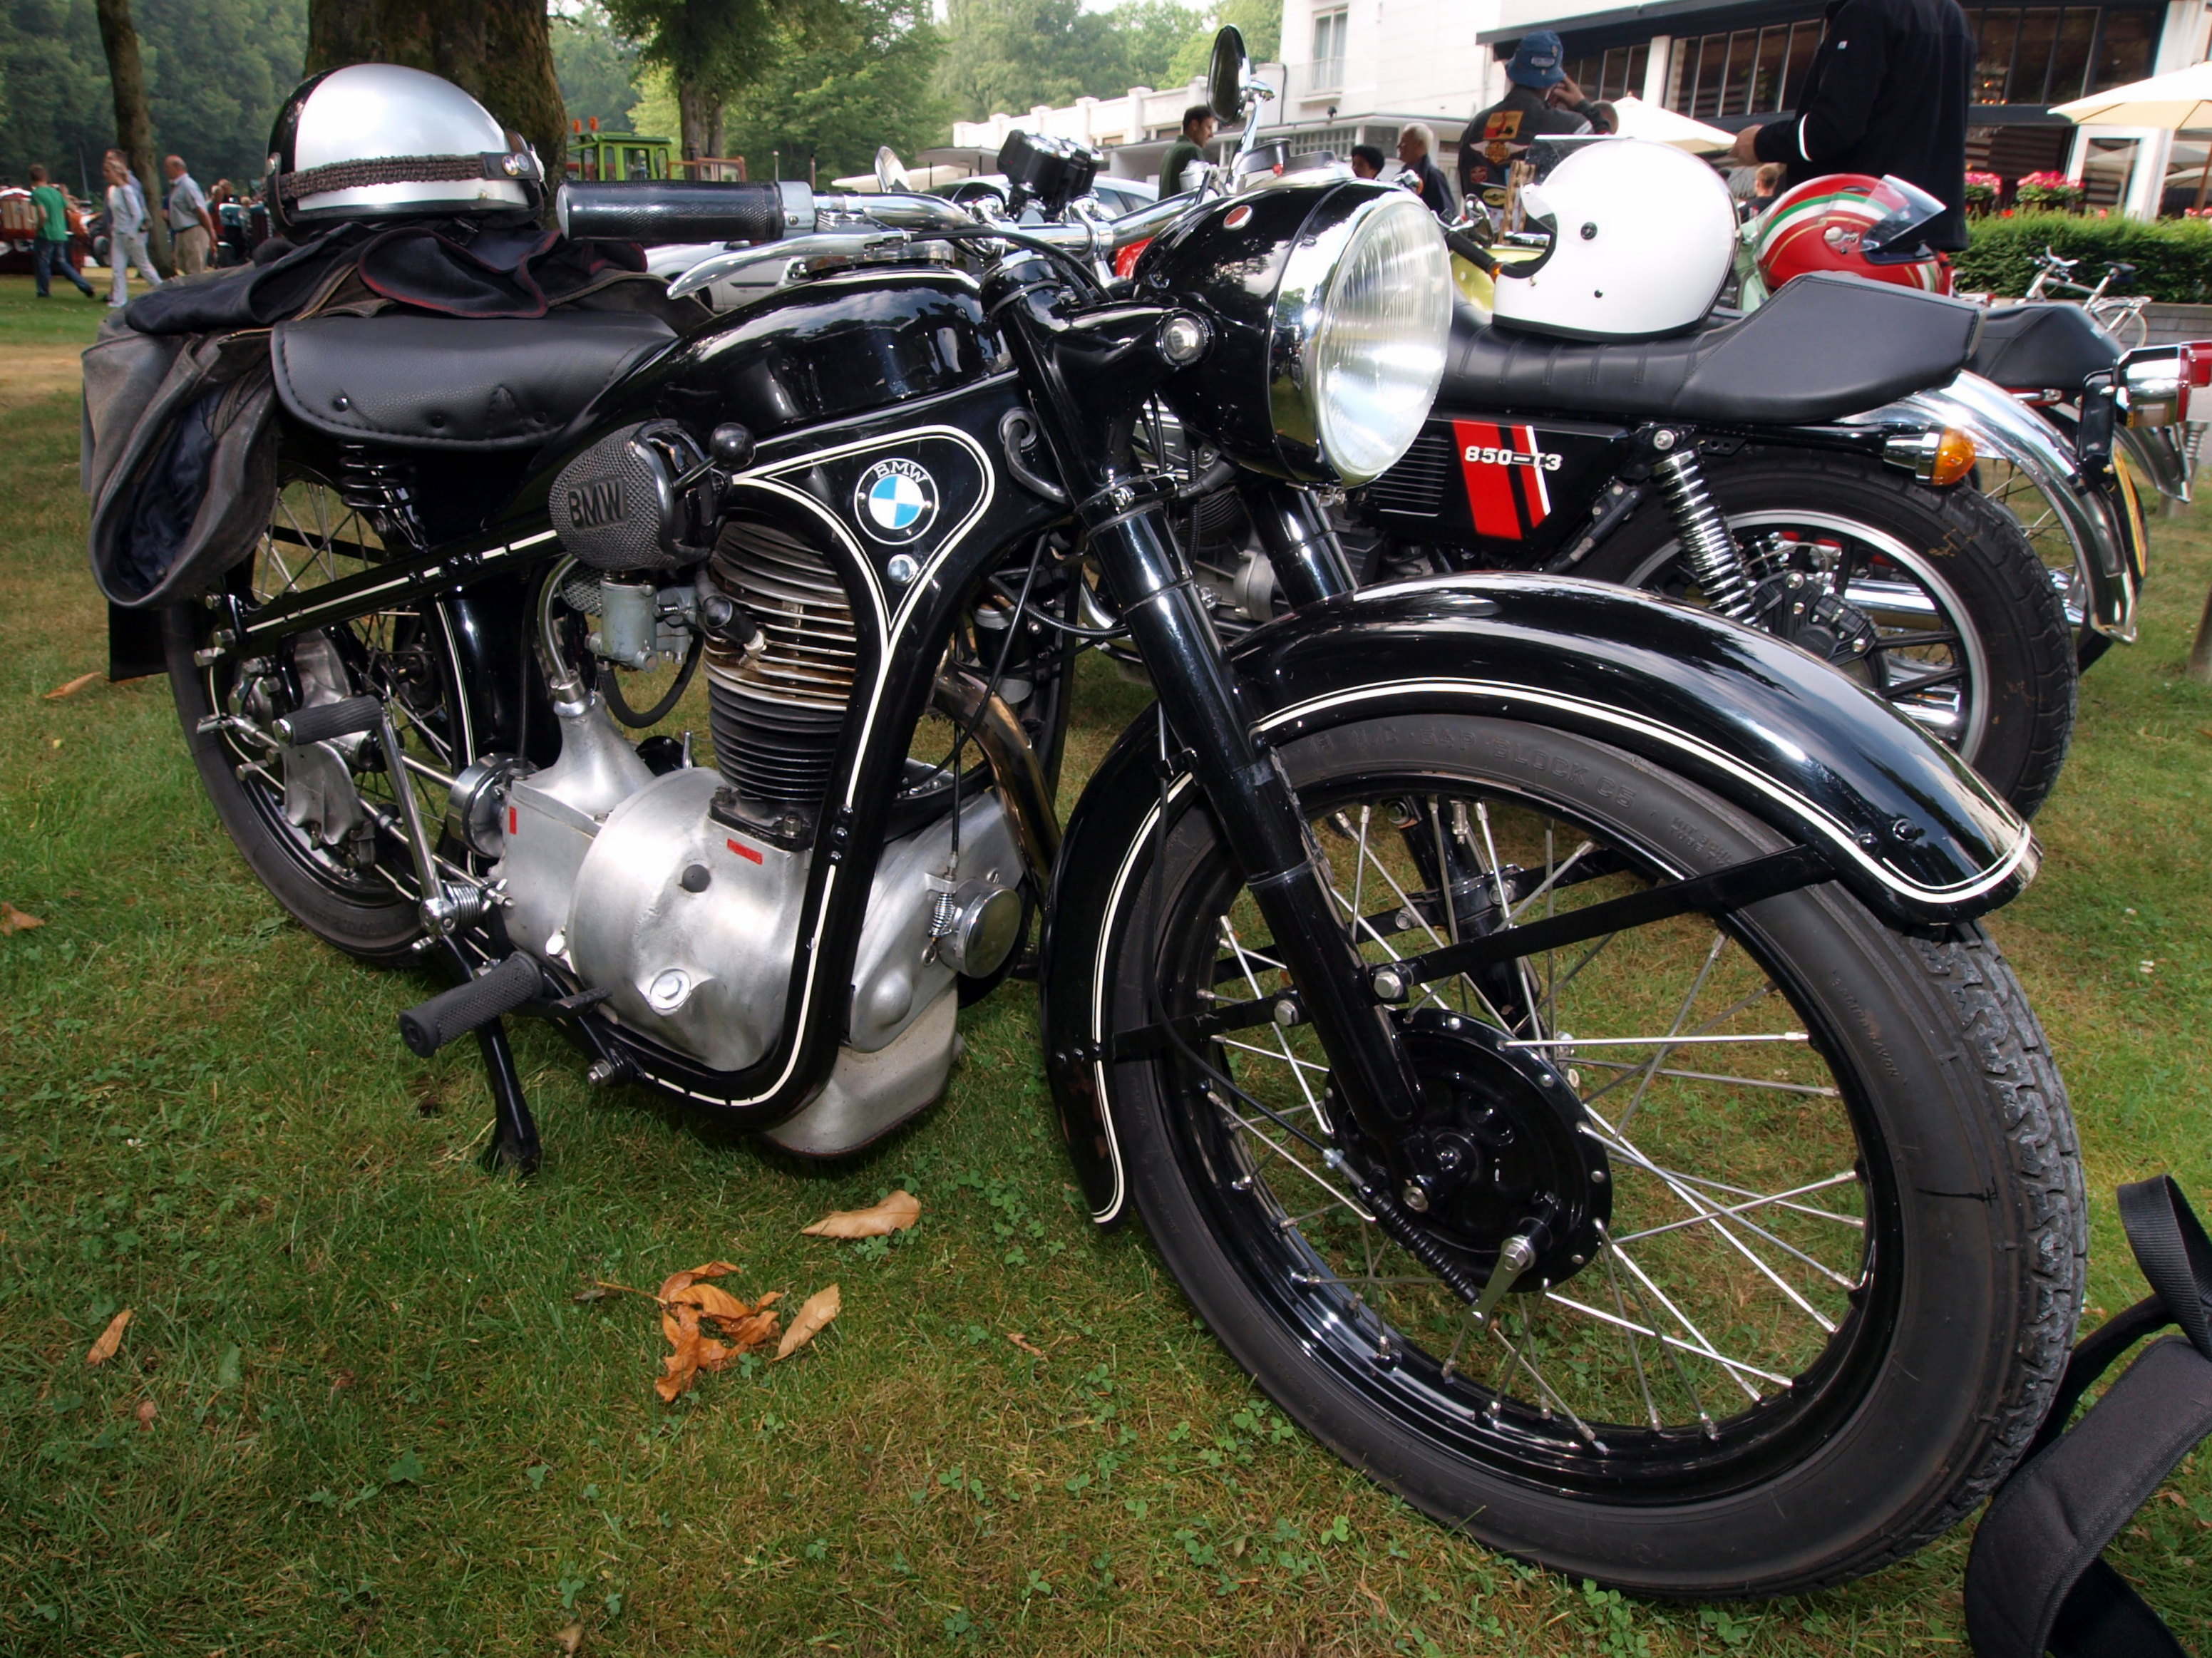 Old BMW motorcycle...